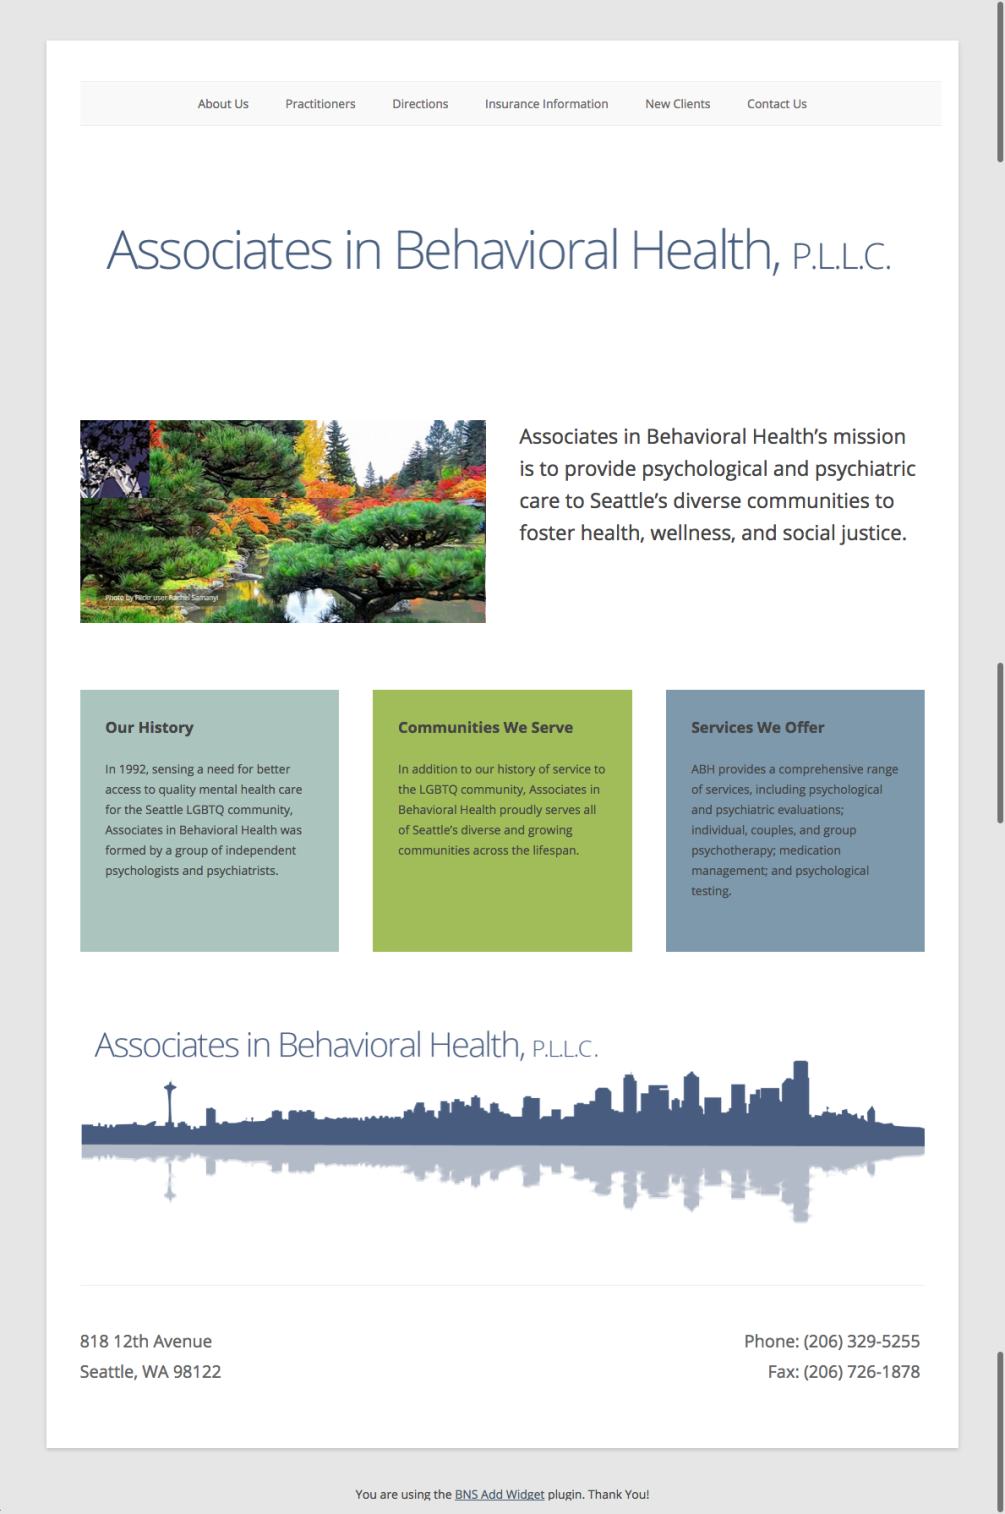 Associates in Behavioral Health, P.L.L.C.   Healthy individuals, relationships, and community